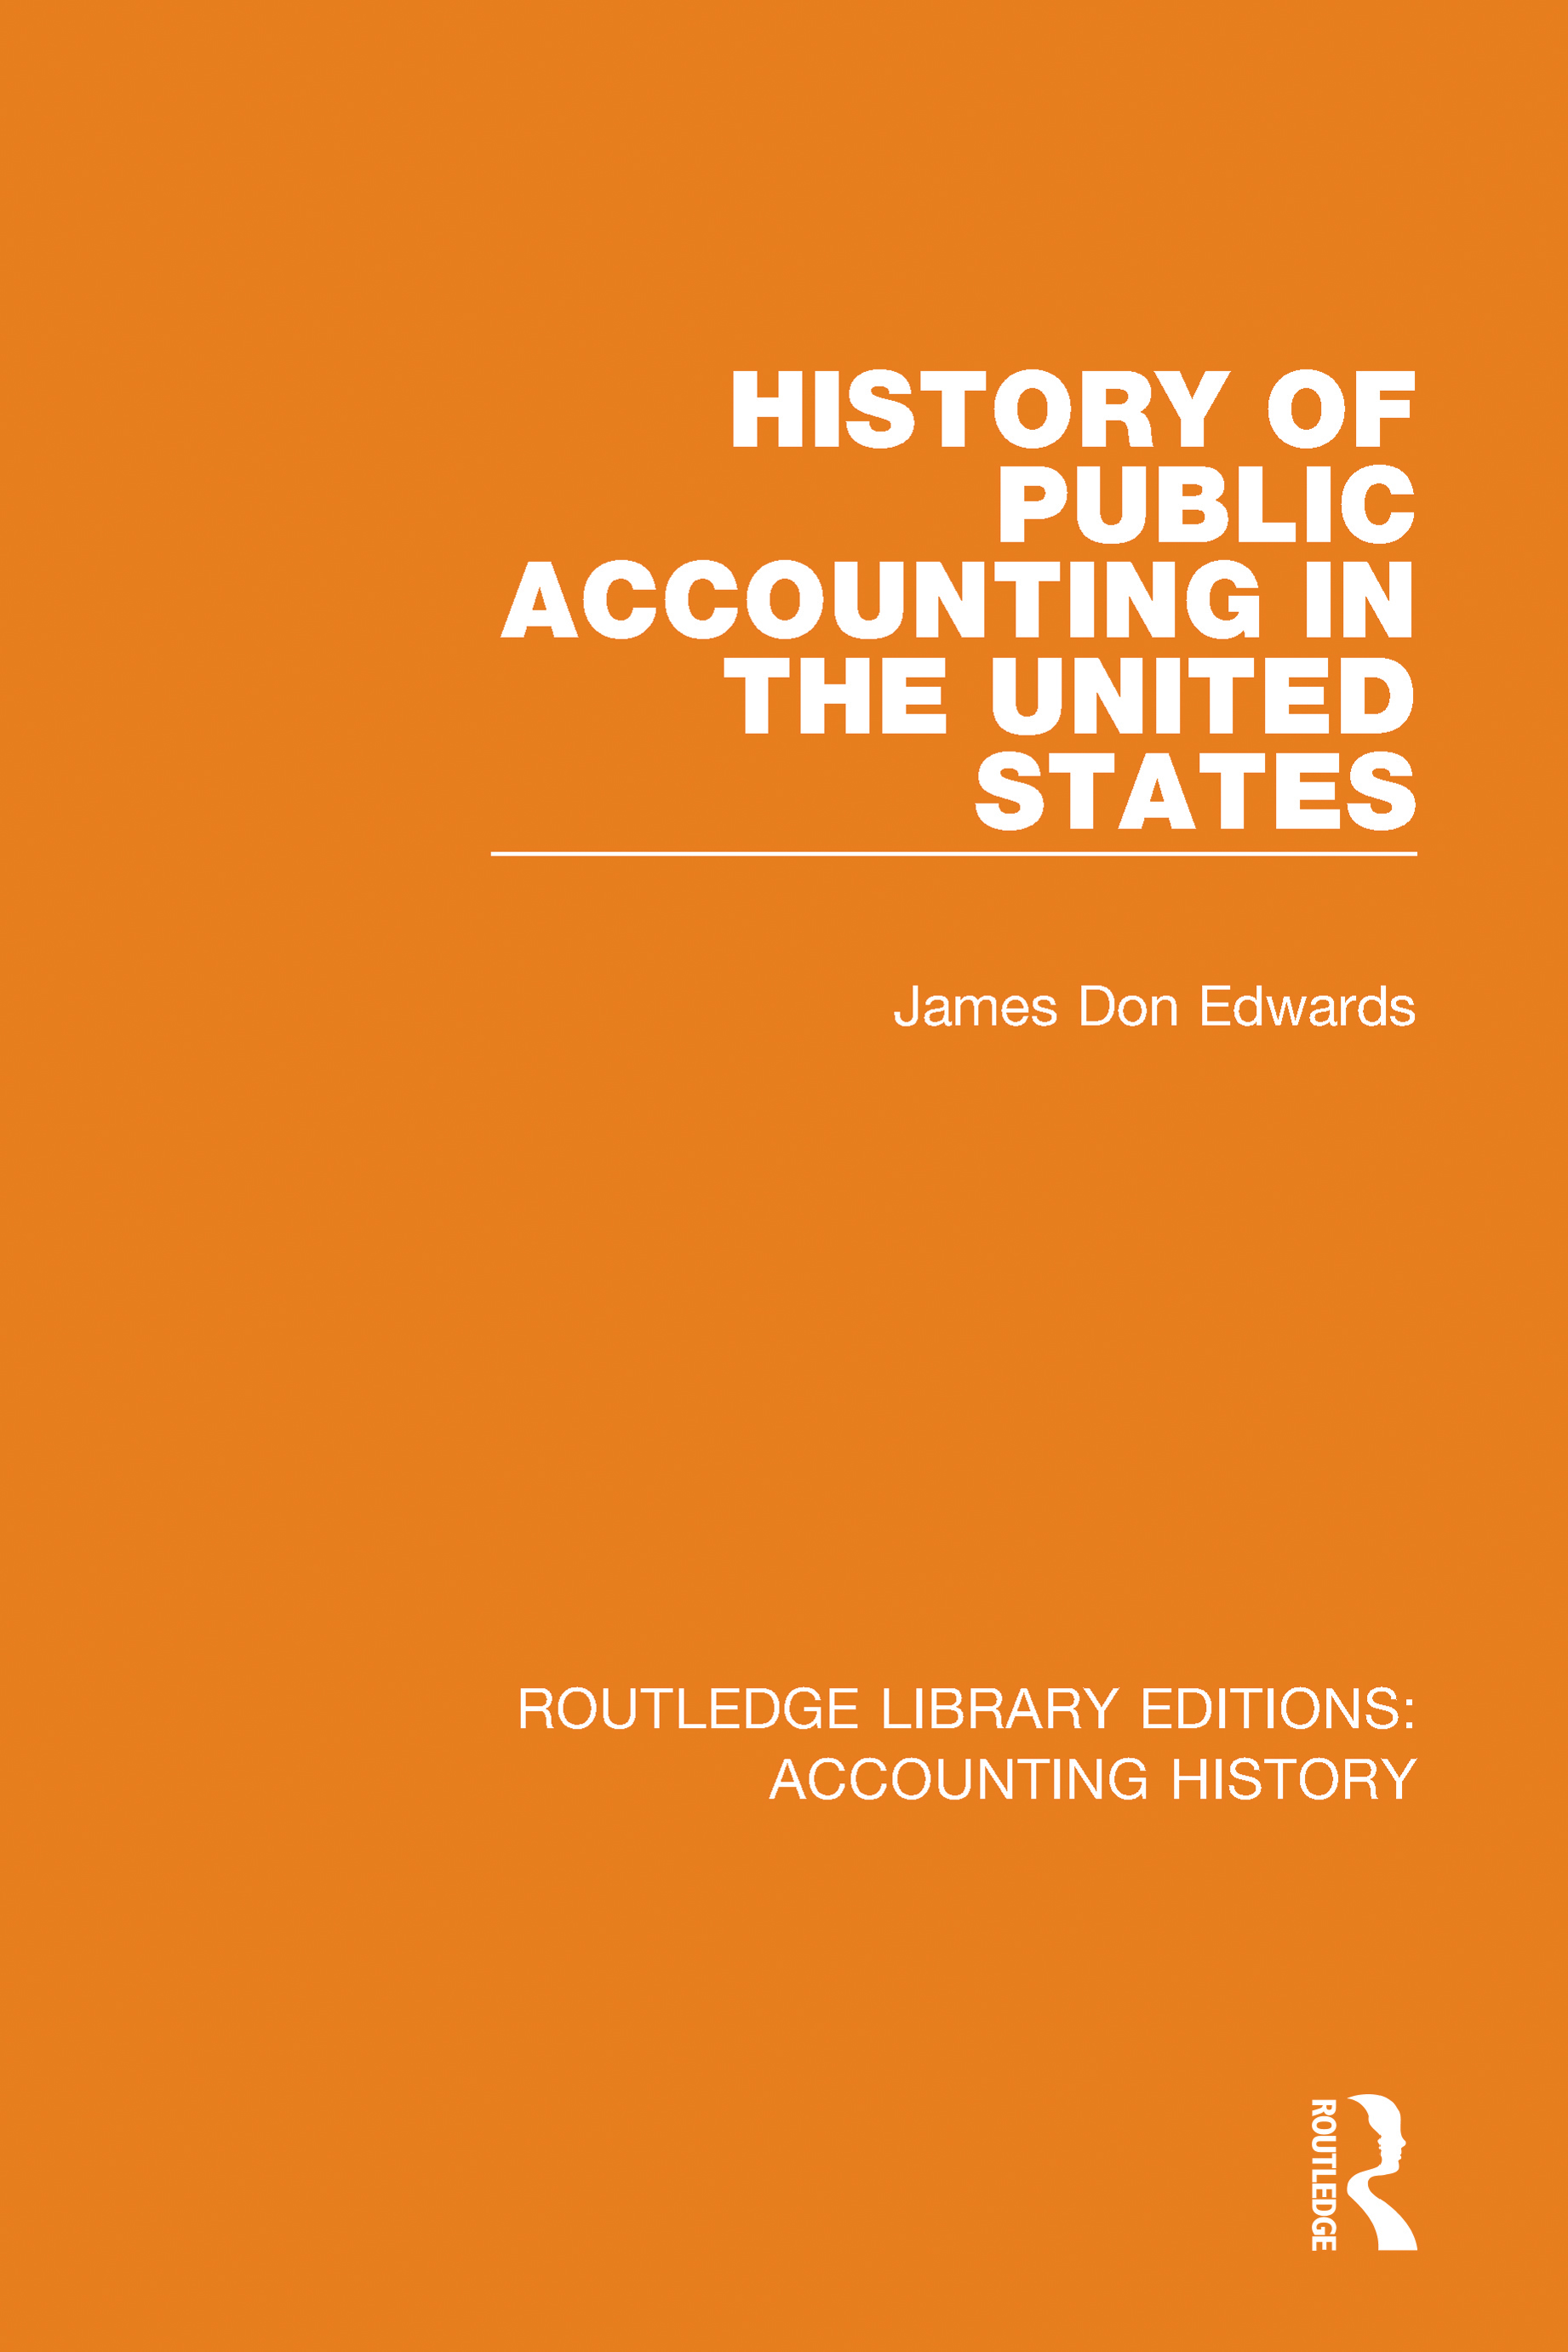 History of Public Accounting in the United States